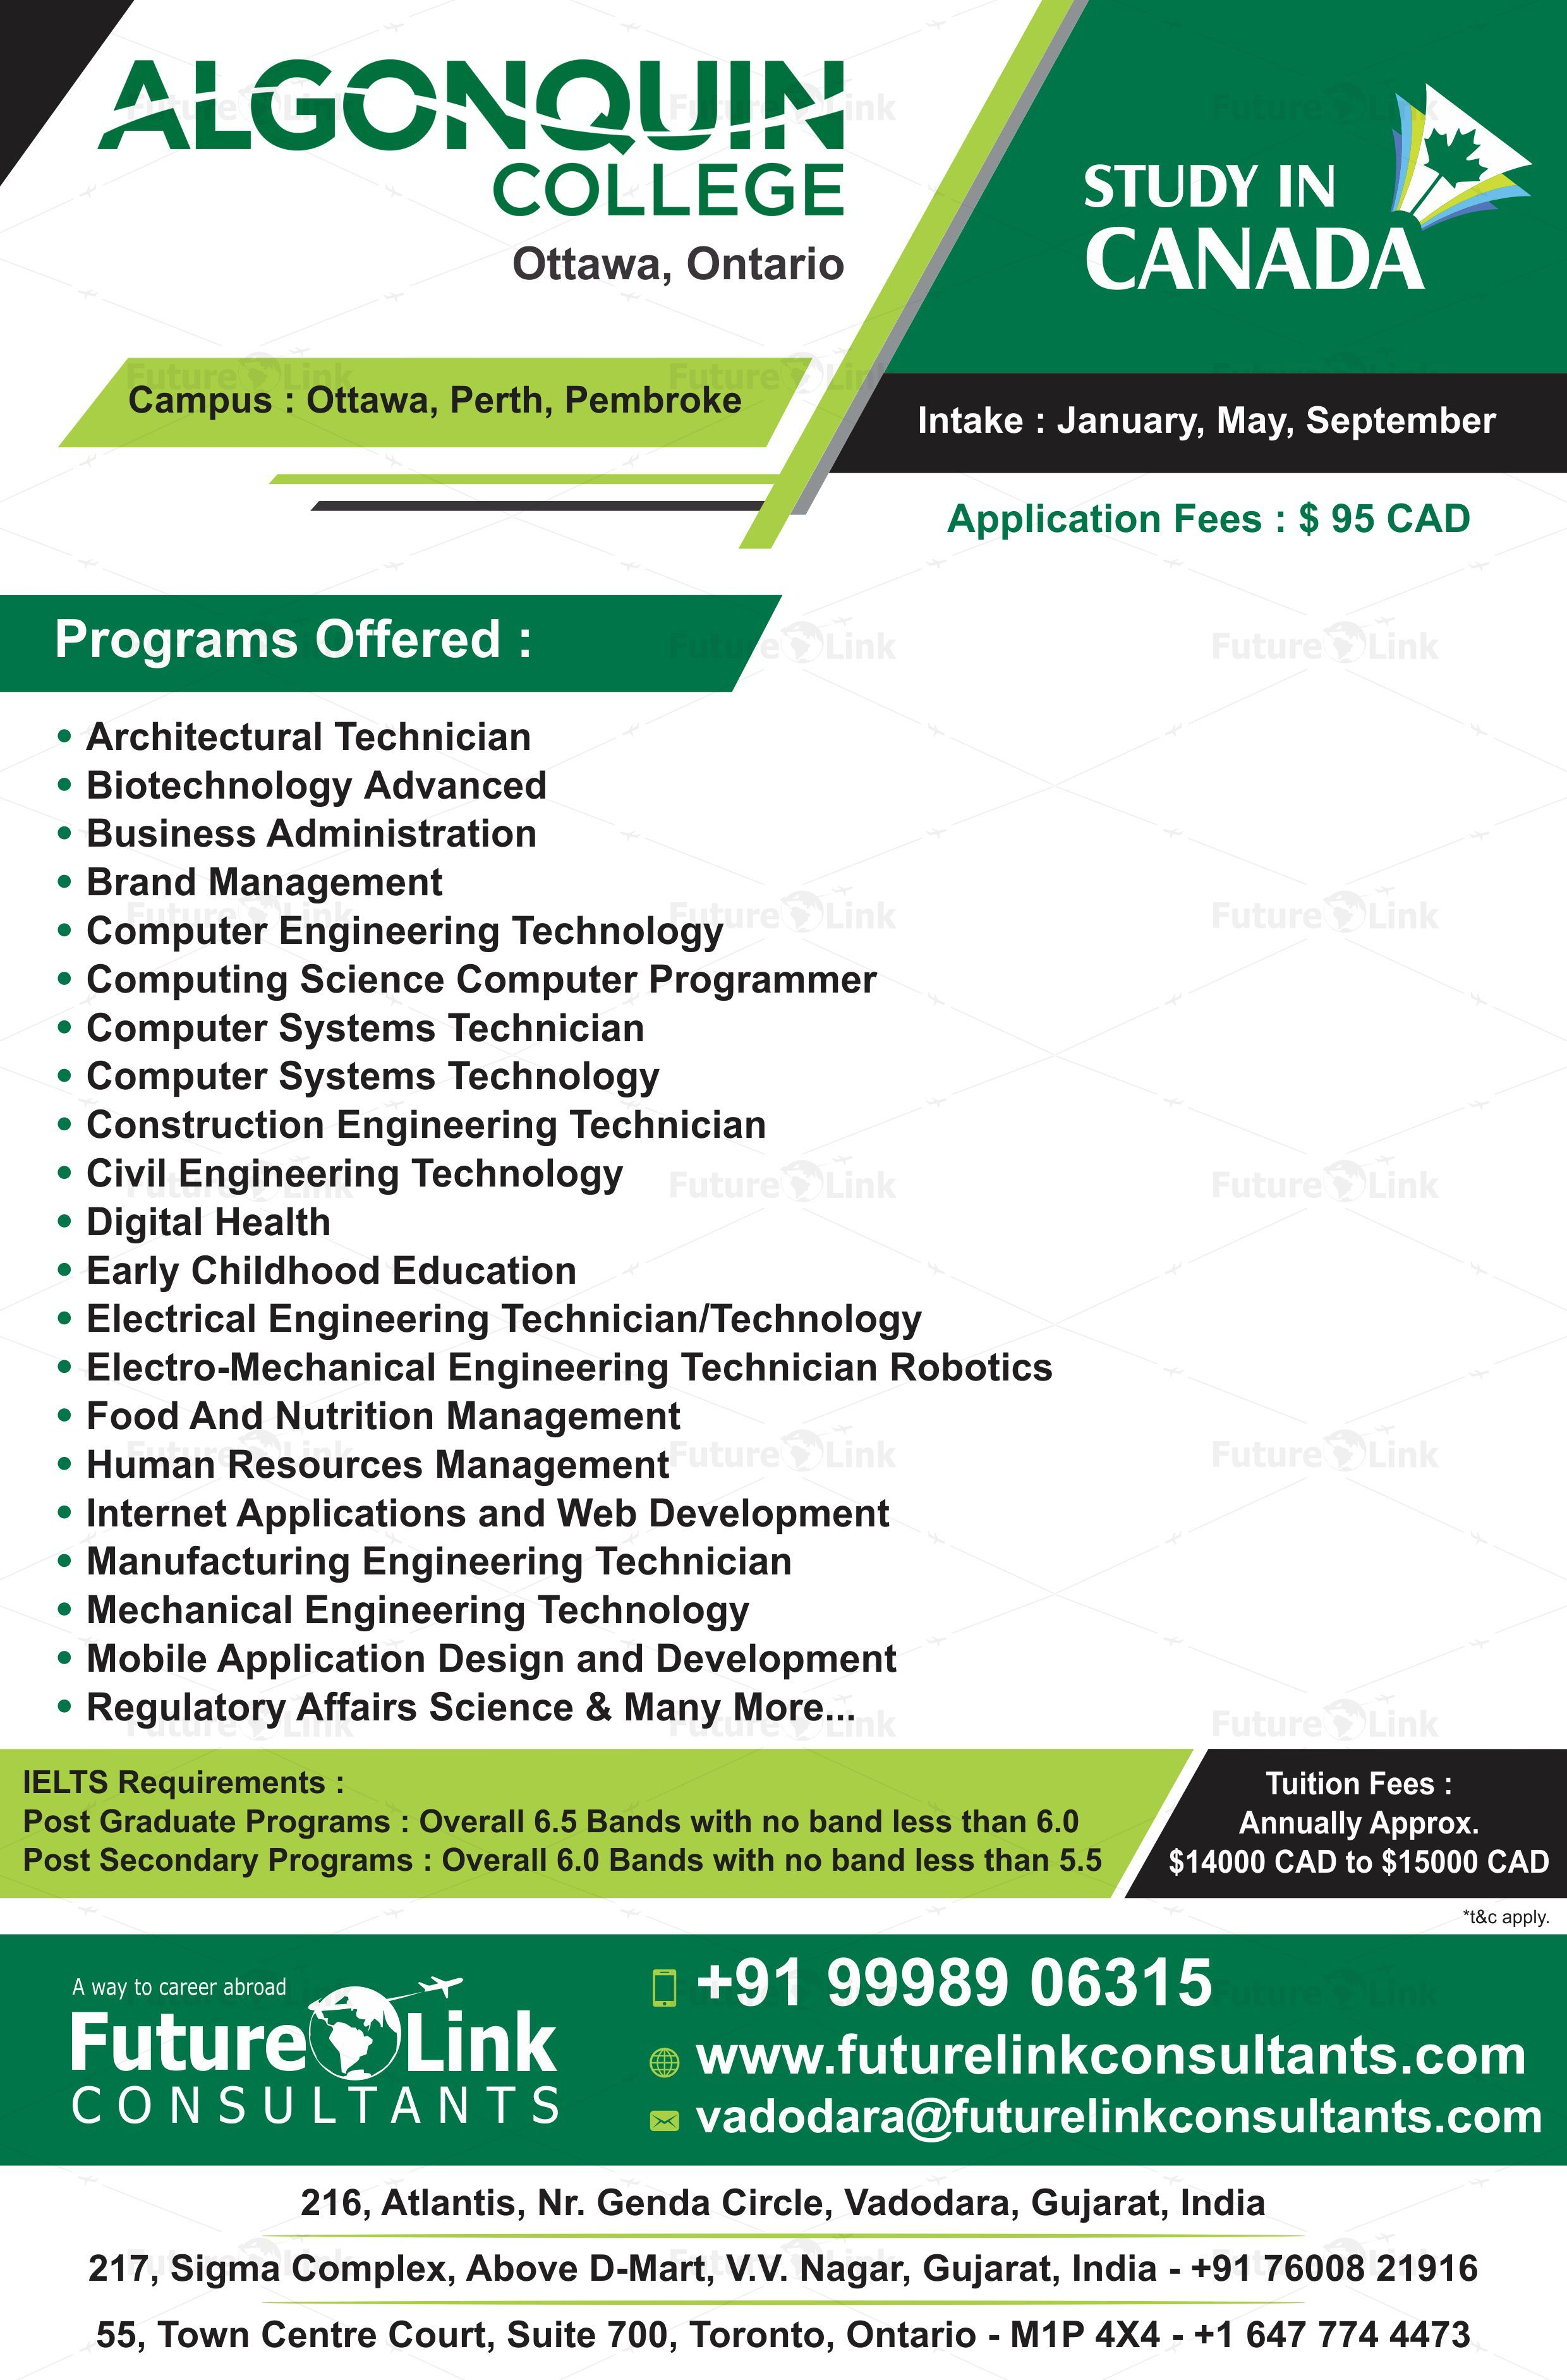 Dear Students Greetings From Future Link Consultants Study In